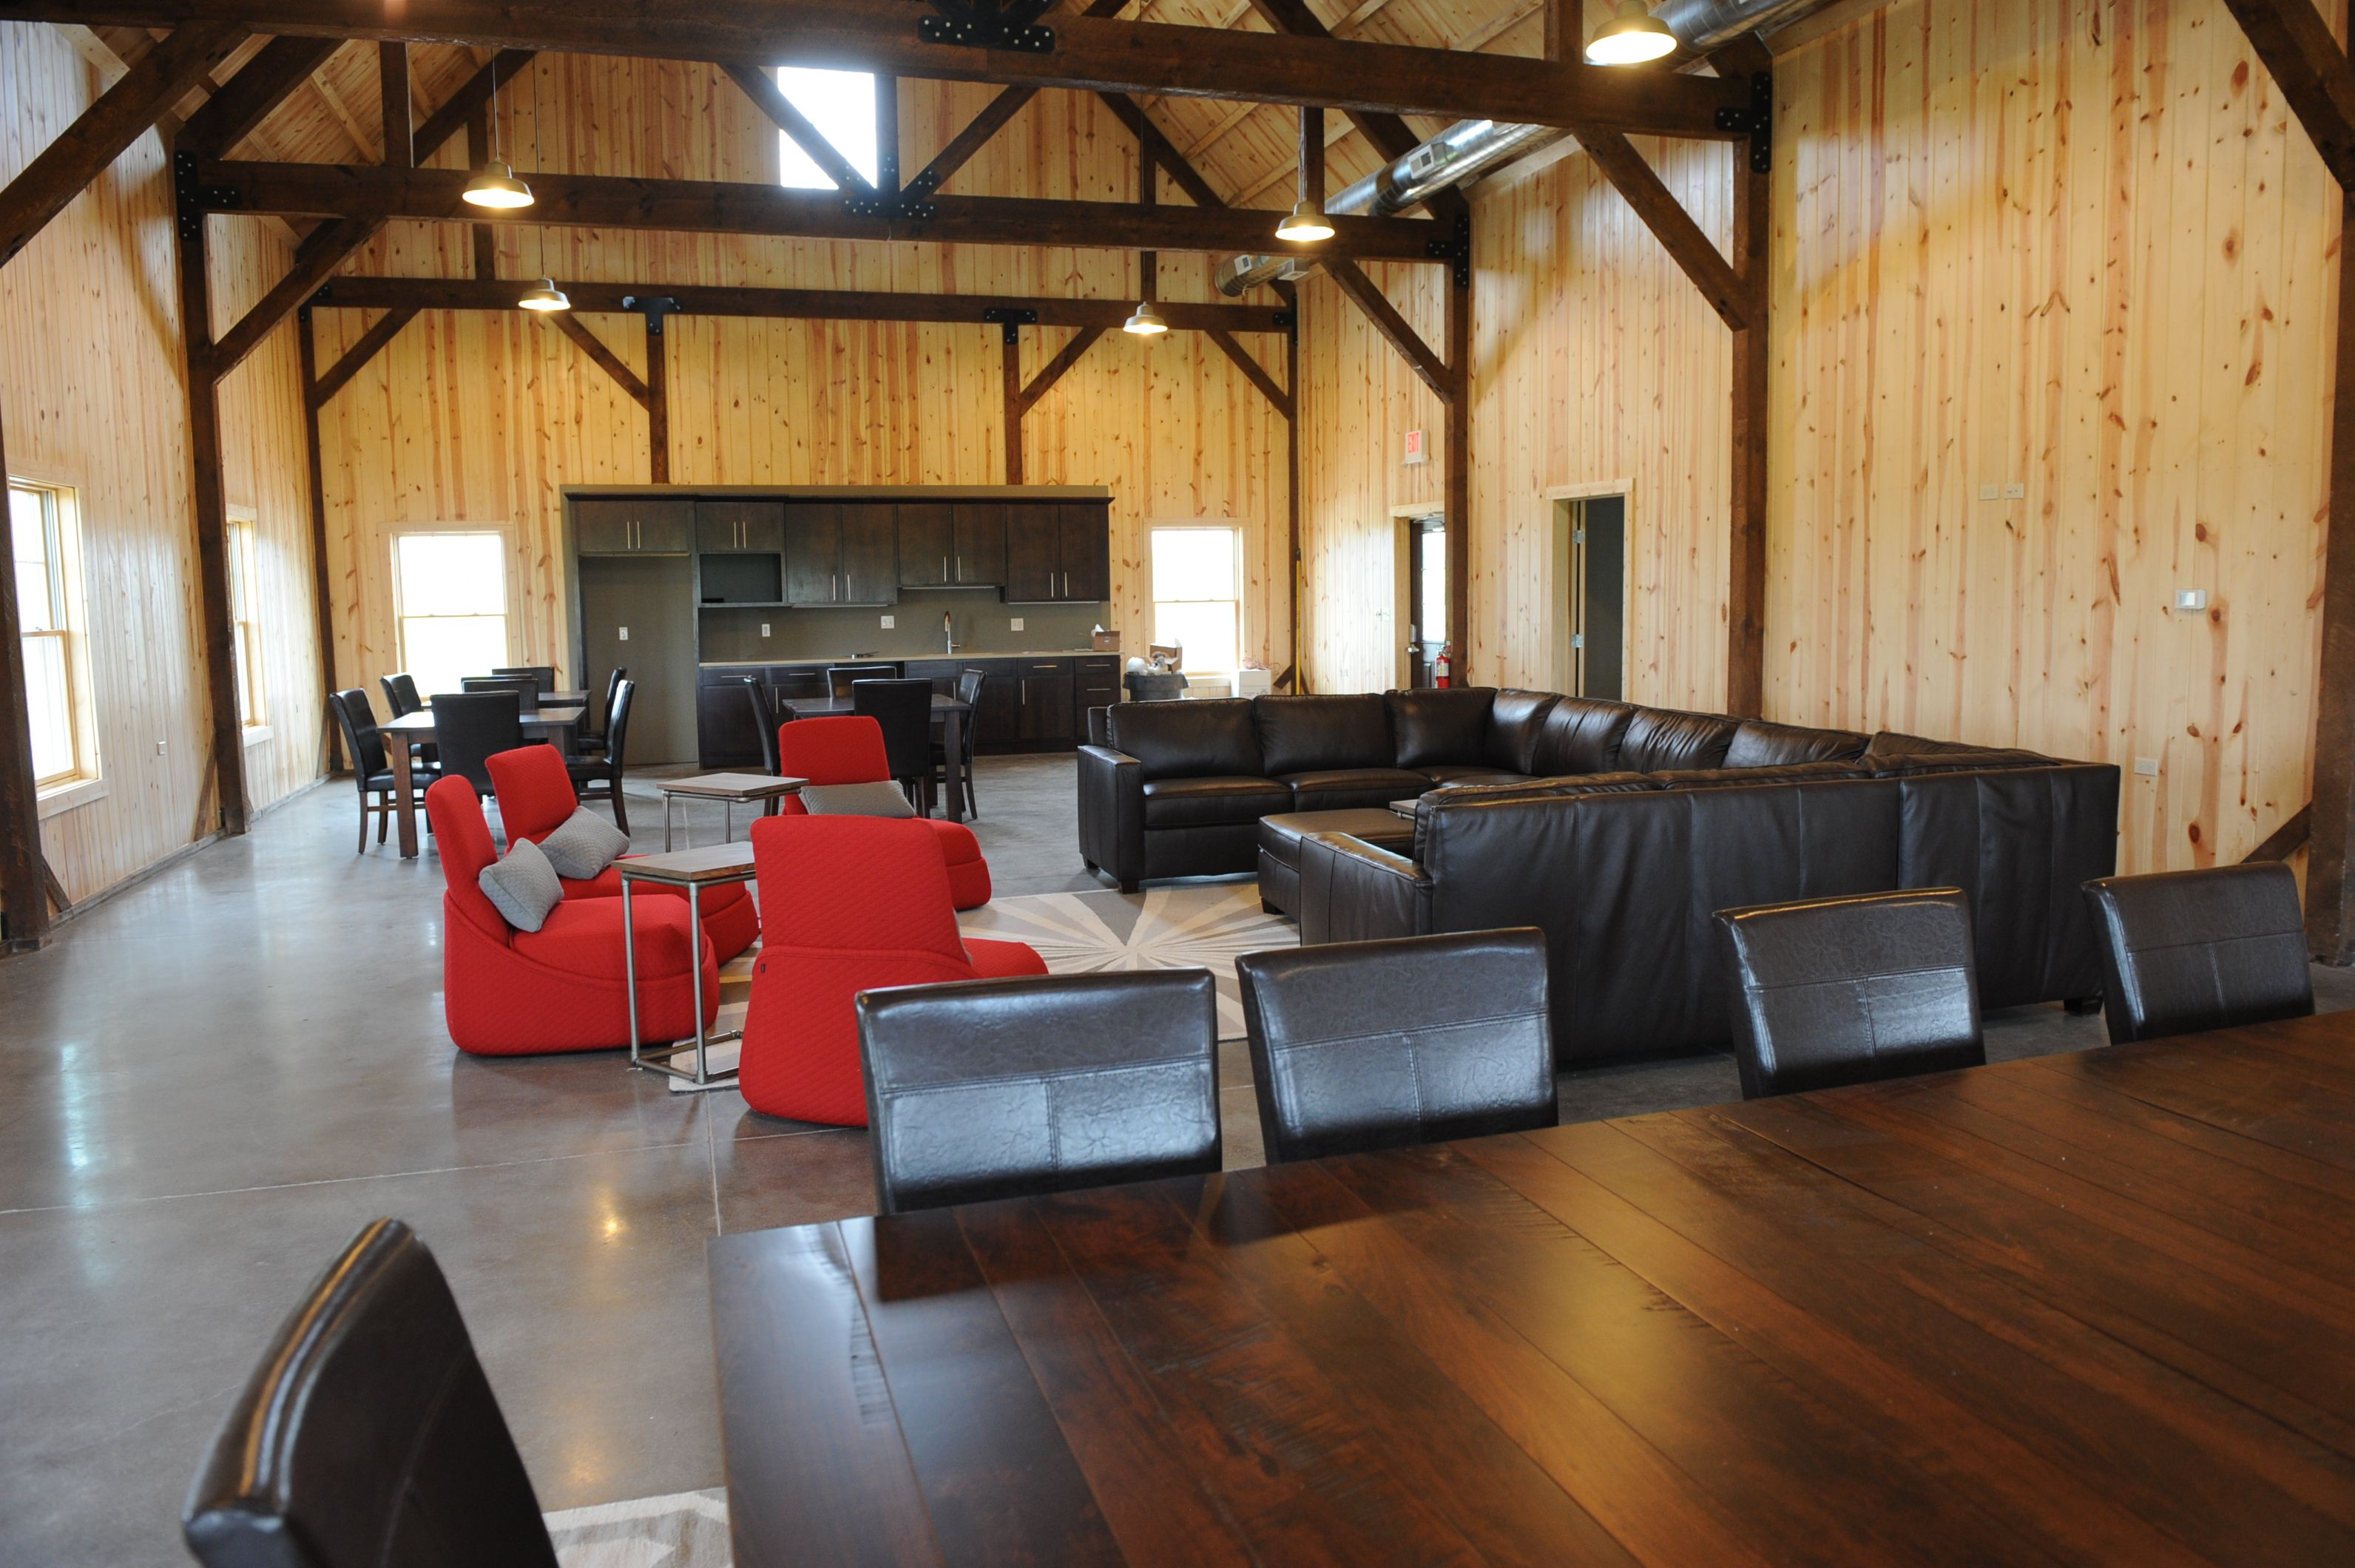 A Look Into The Lounge Area In The New Golf Facility Cyclones Lounge Areas Home Home Decor